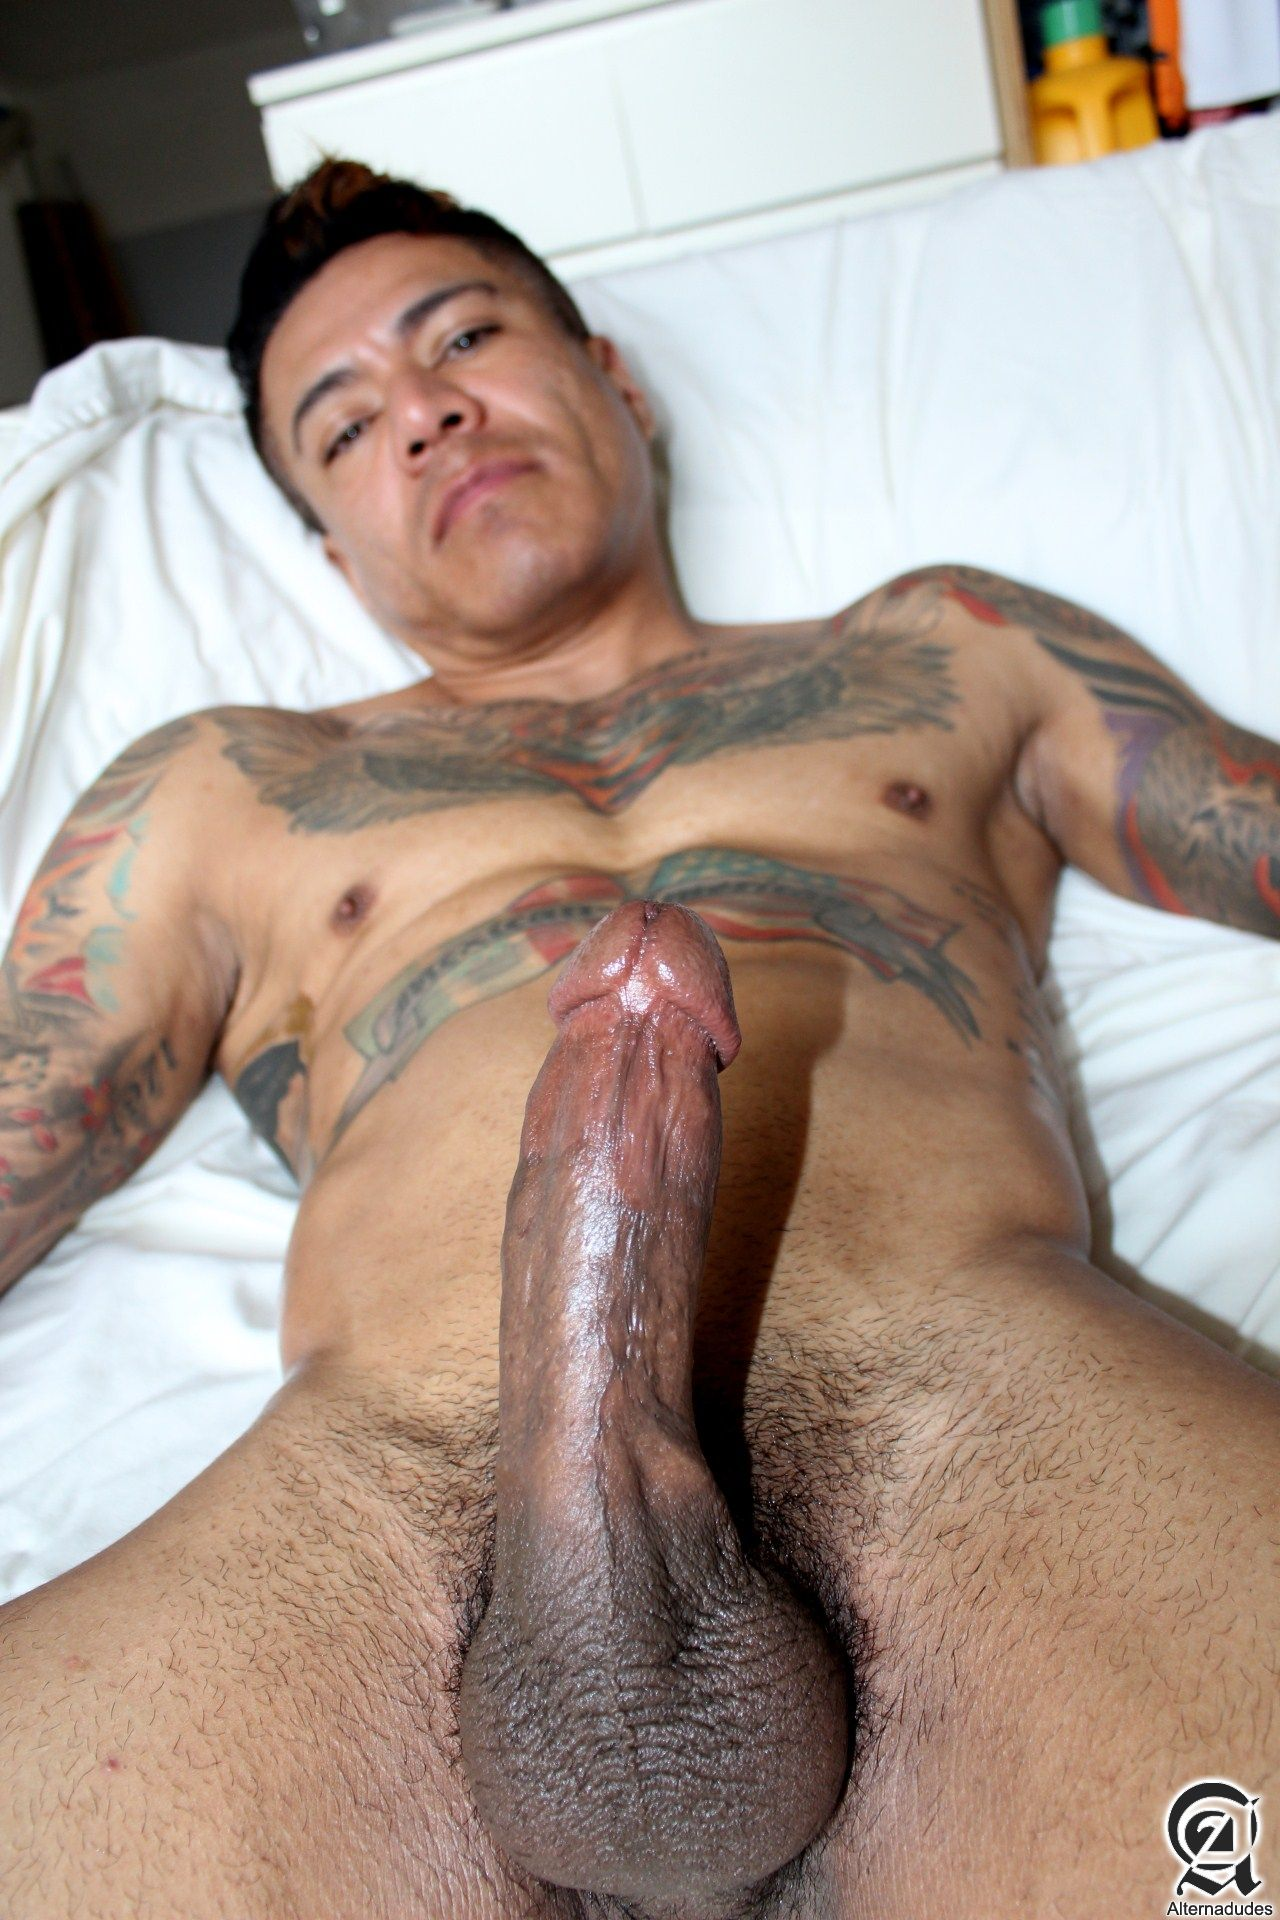 Alternadudes-Maxx-Sanchez-Tatted-Mexican-Daddy-Big-Cock-Amateur-Gay-Porn-10 Amateur Tatted Latino Daddy Shot A Load In His Mouth